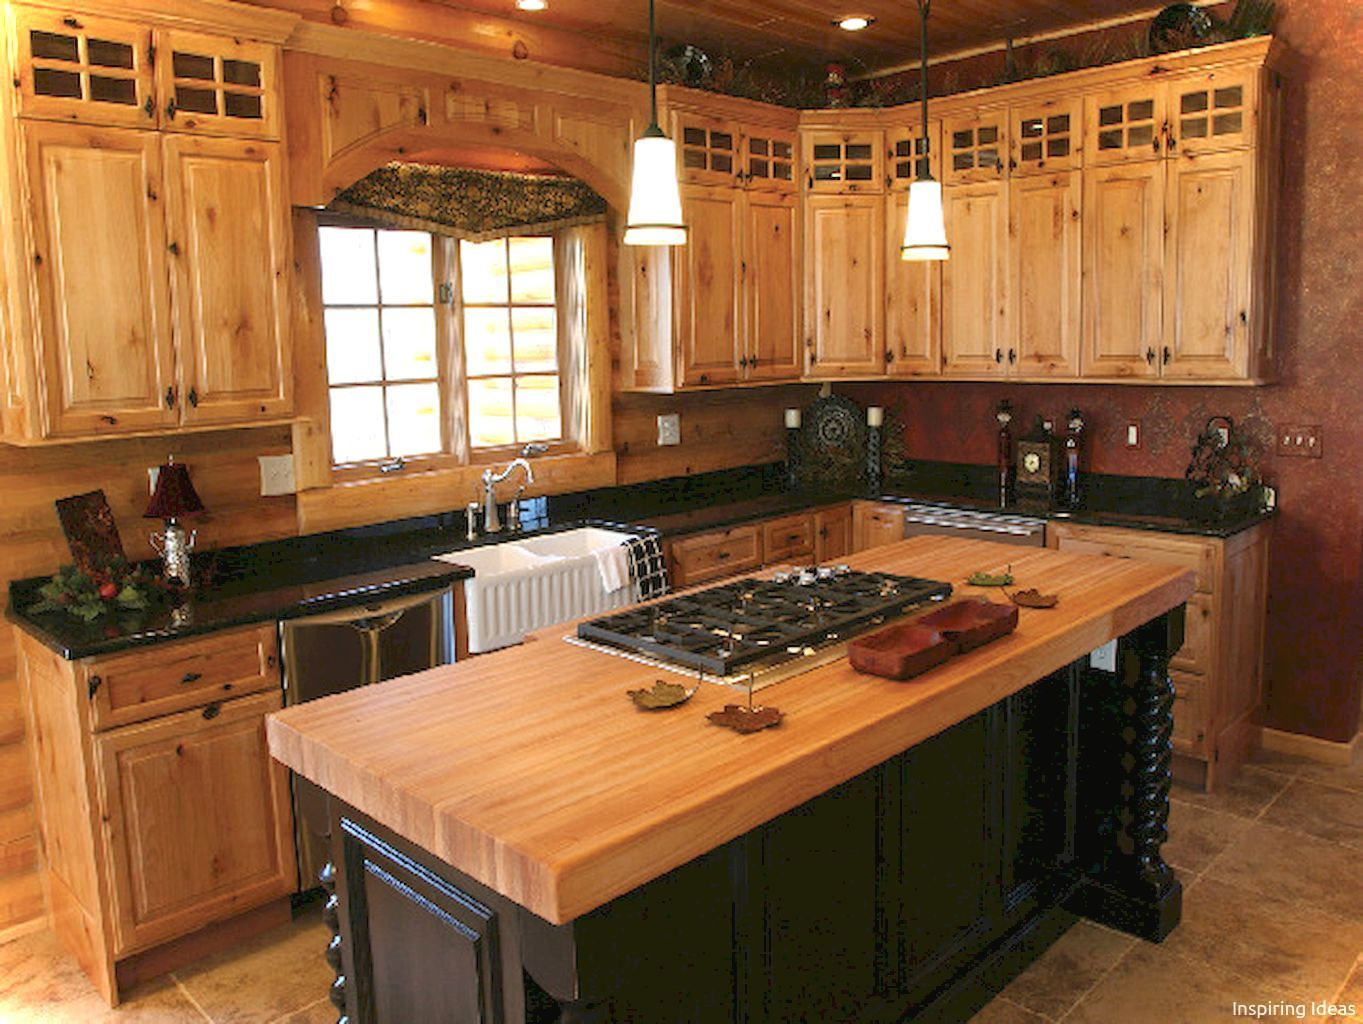 69 Rustic Kitchen Cabinets Ideas